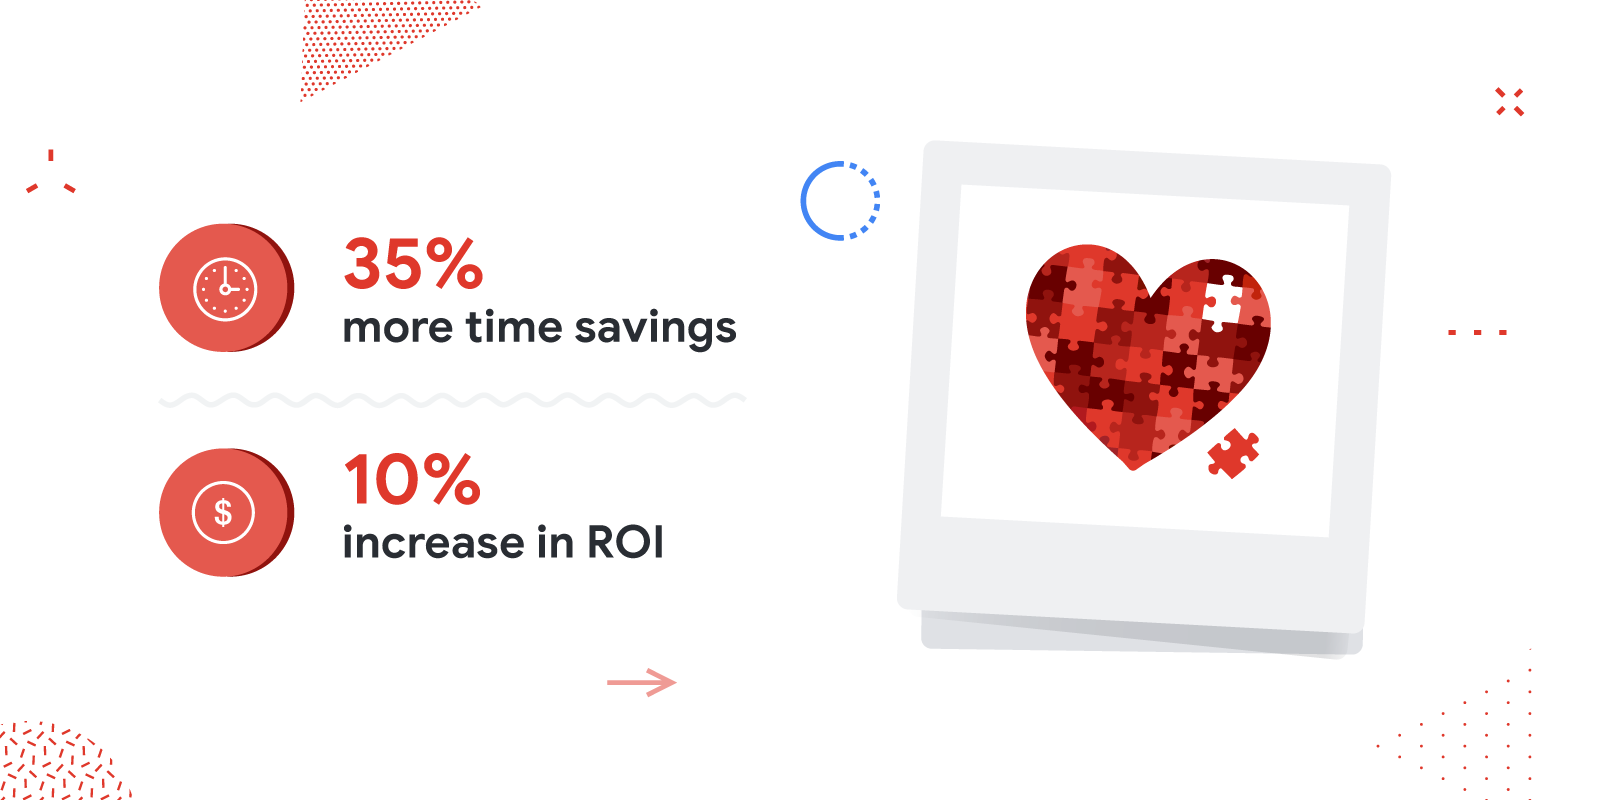 3 ways to show your customers love on Valentine's Day